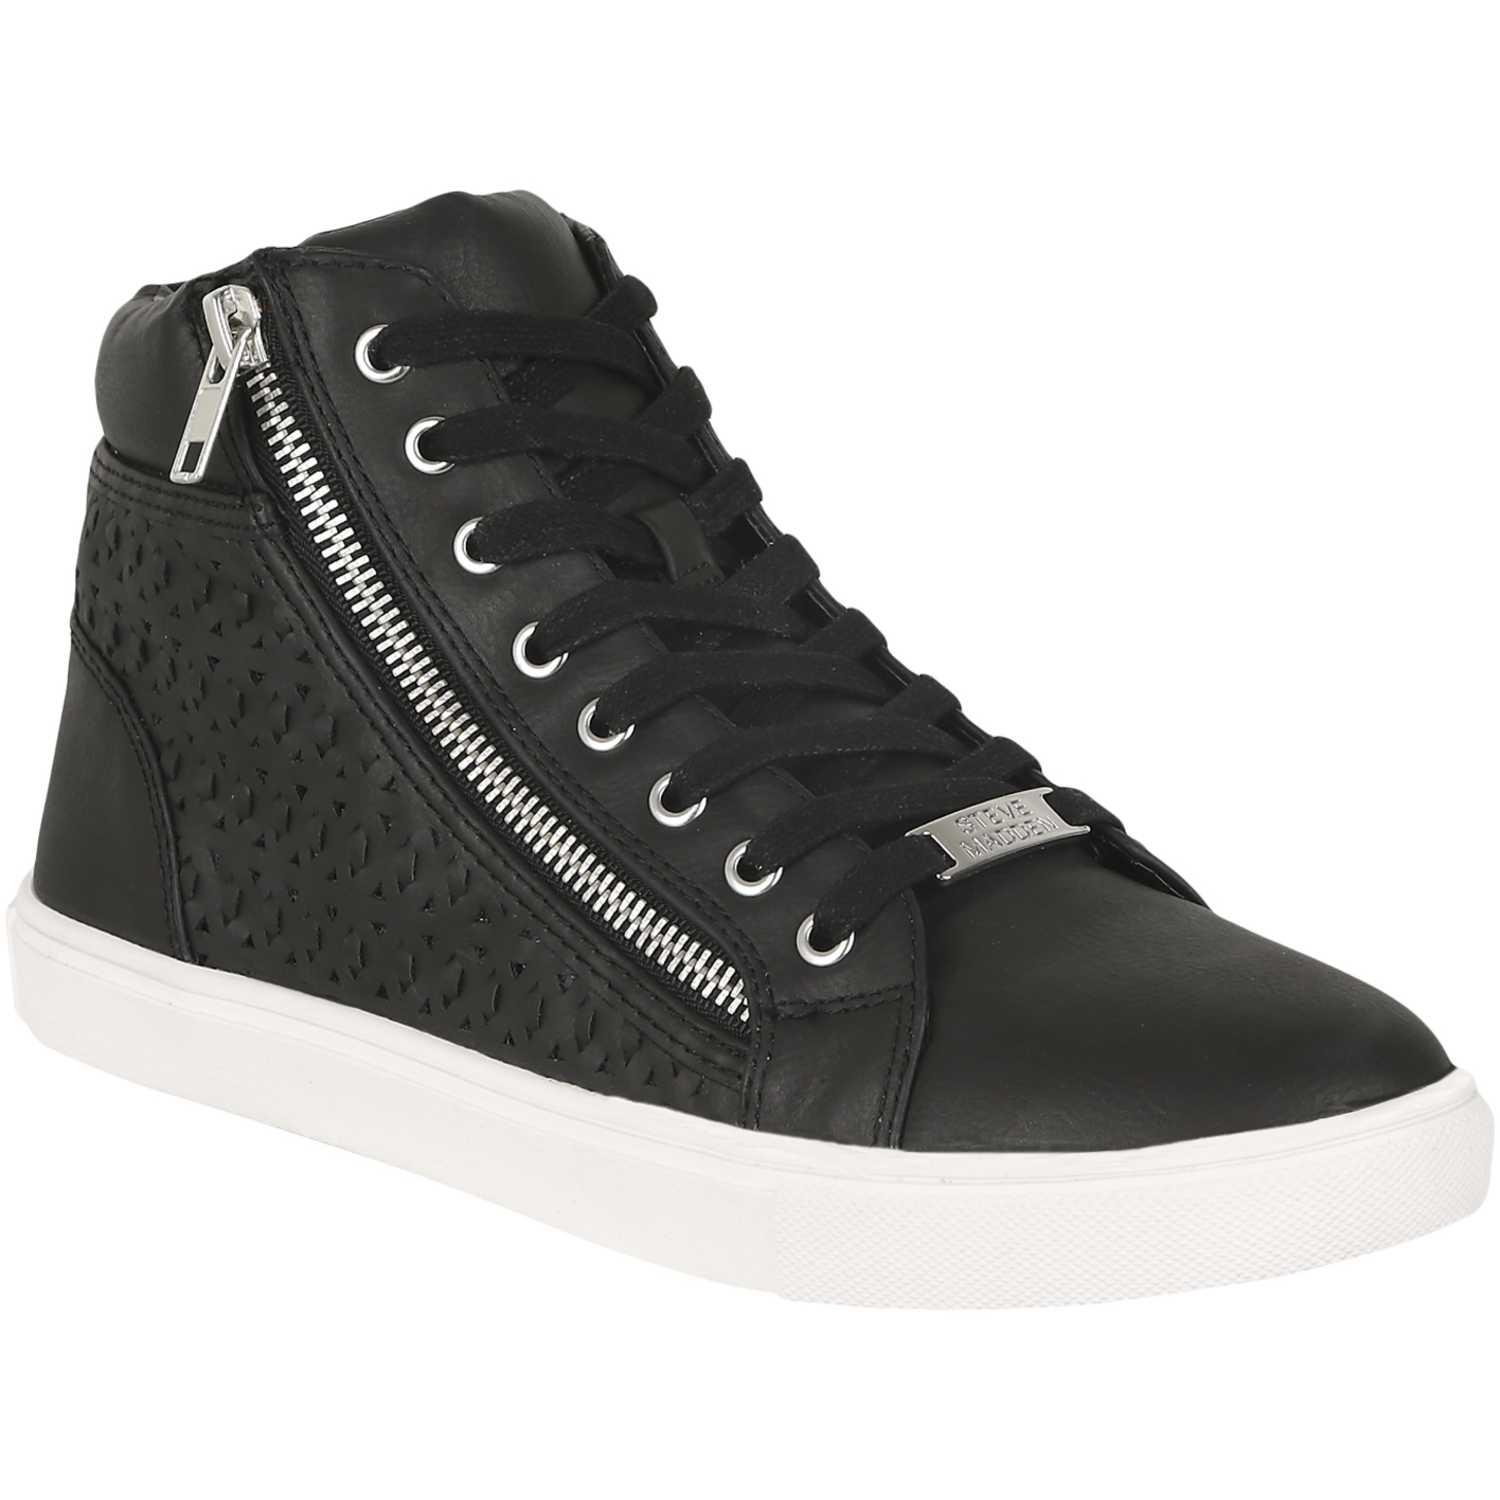 Steve Madden eiris Negro Zapatillas Fashion